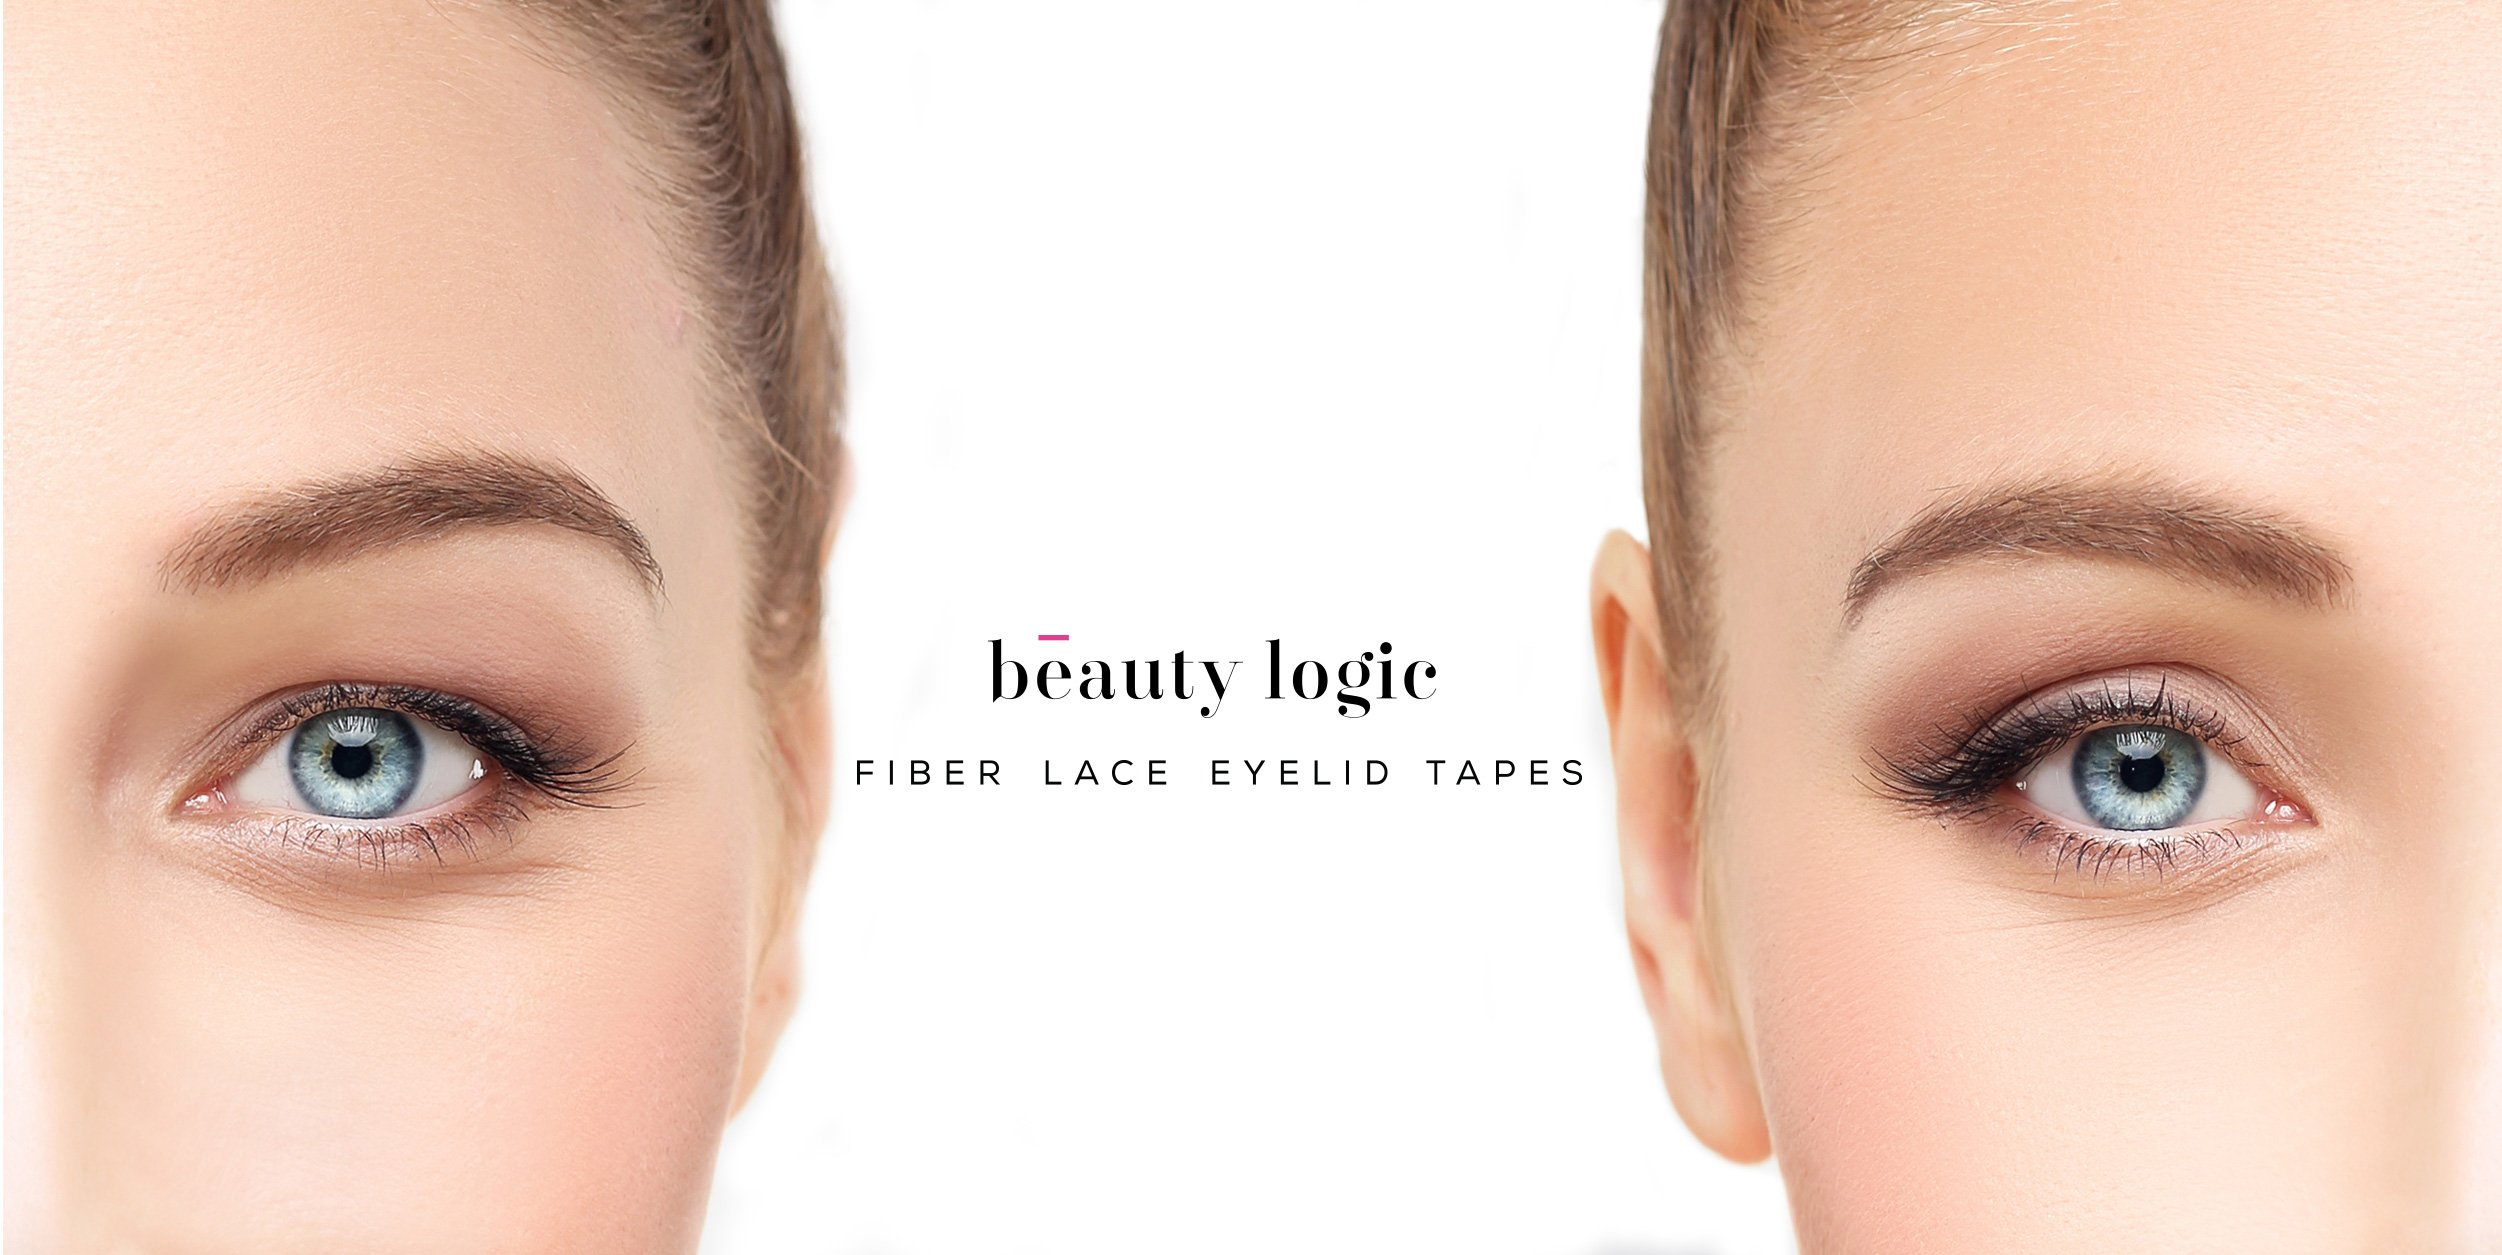 Beauty Logic Ultra Invisible Fiber Lace Eyelid Lift Kit - 120pcs (Medium) LATEX FREE-ONLY SELL FROM U.S.A! Double Eyelid Tape perfect for hooded, droopy, uneven, or mono-eyelids, NO GLARE GUARANTEED